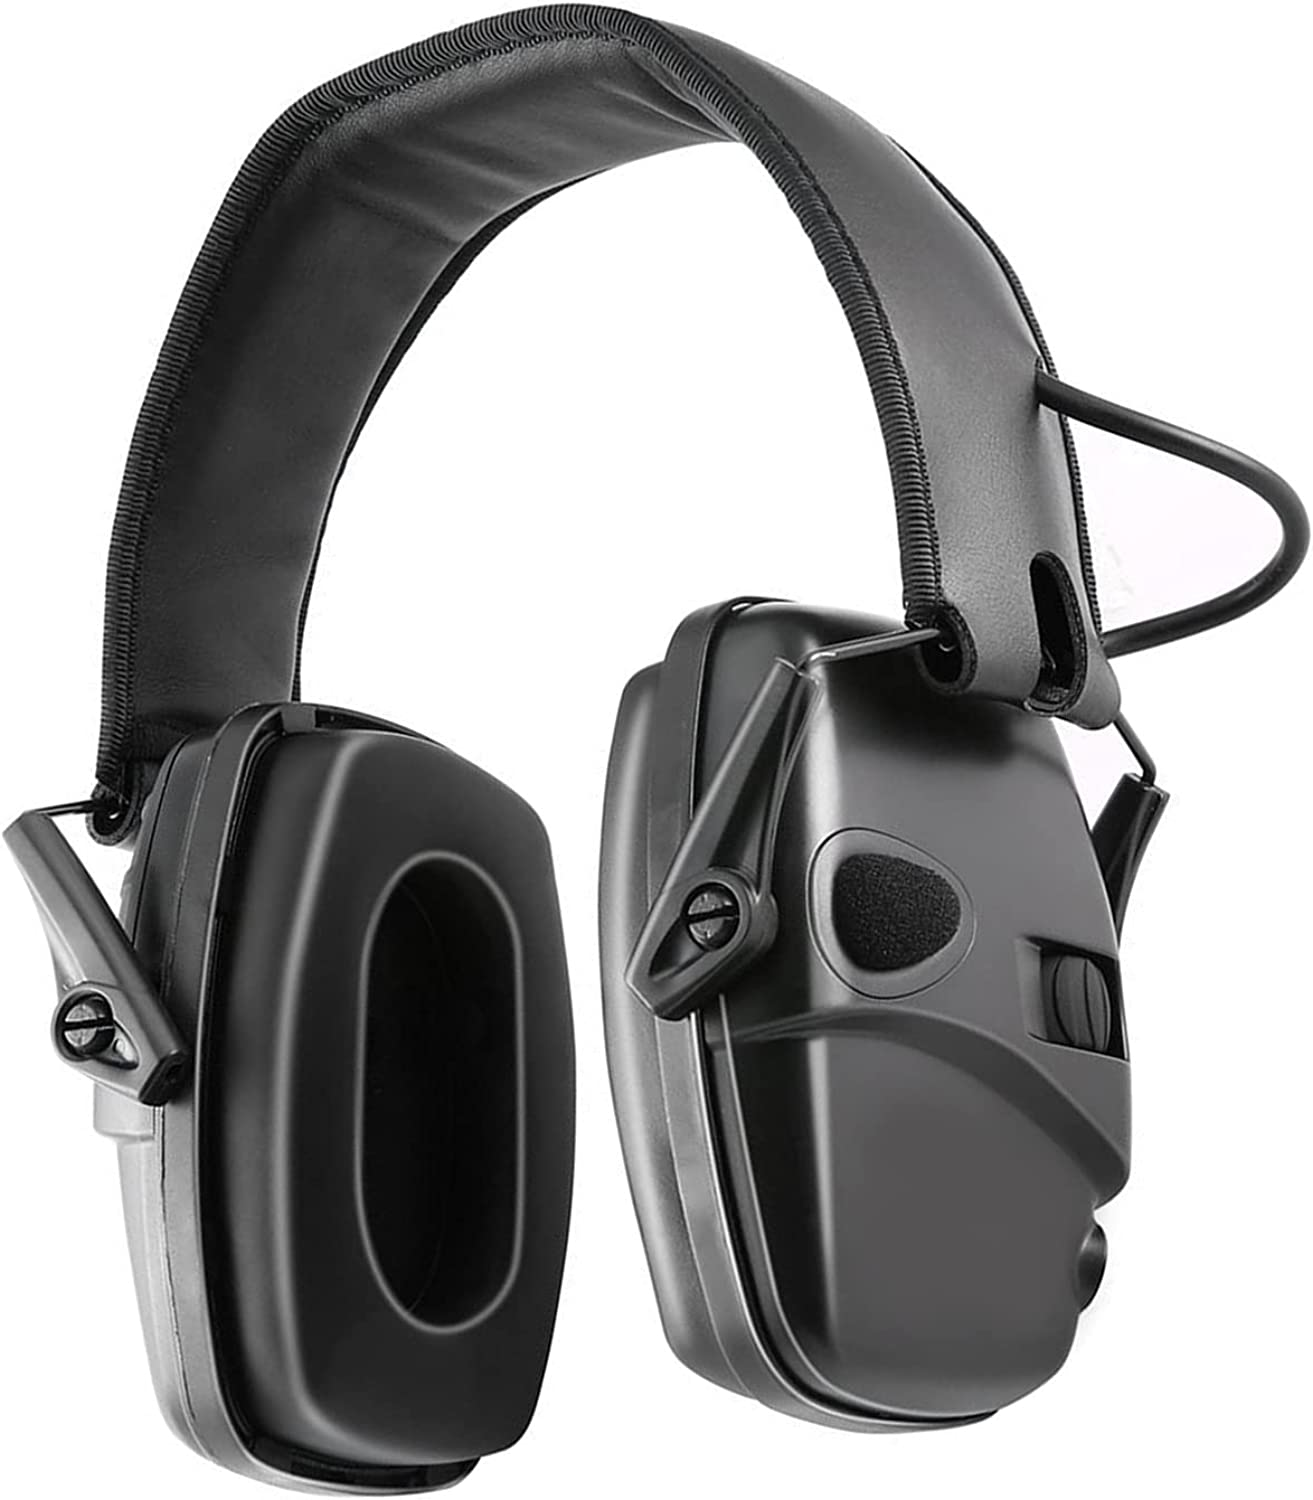 Rehomy Foldable Hearing Protection Headphones Electronic Shooting Earmuffs Ear Protecting for Outdoor Hunting Shooting